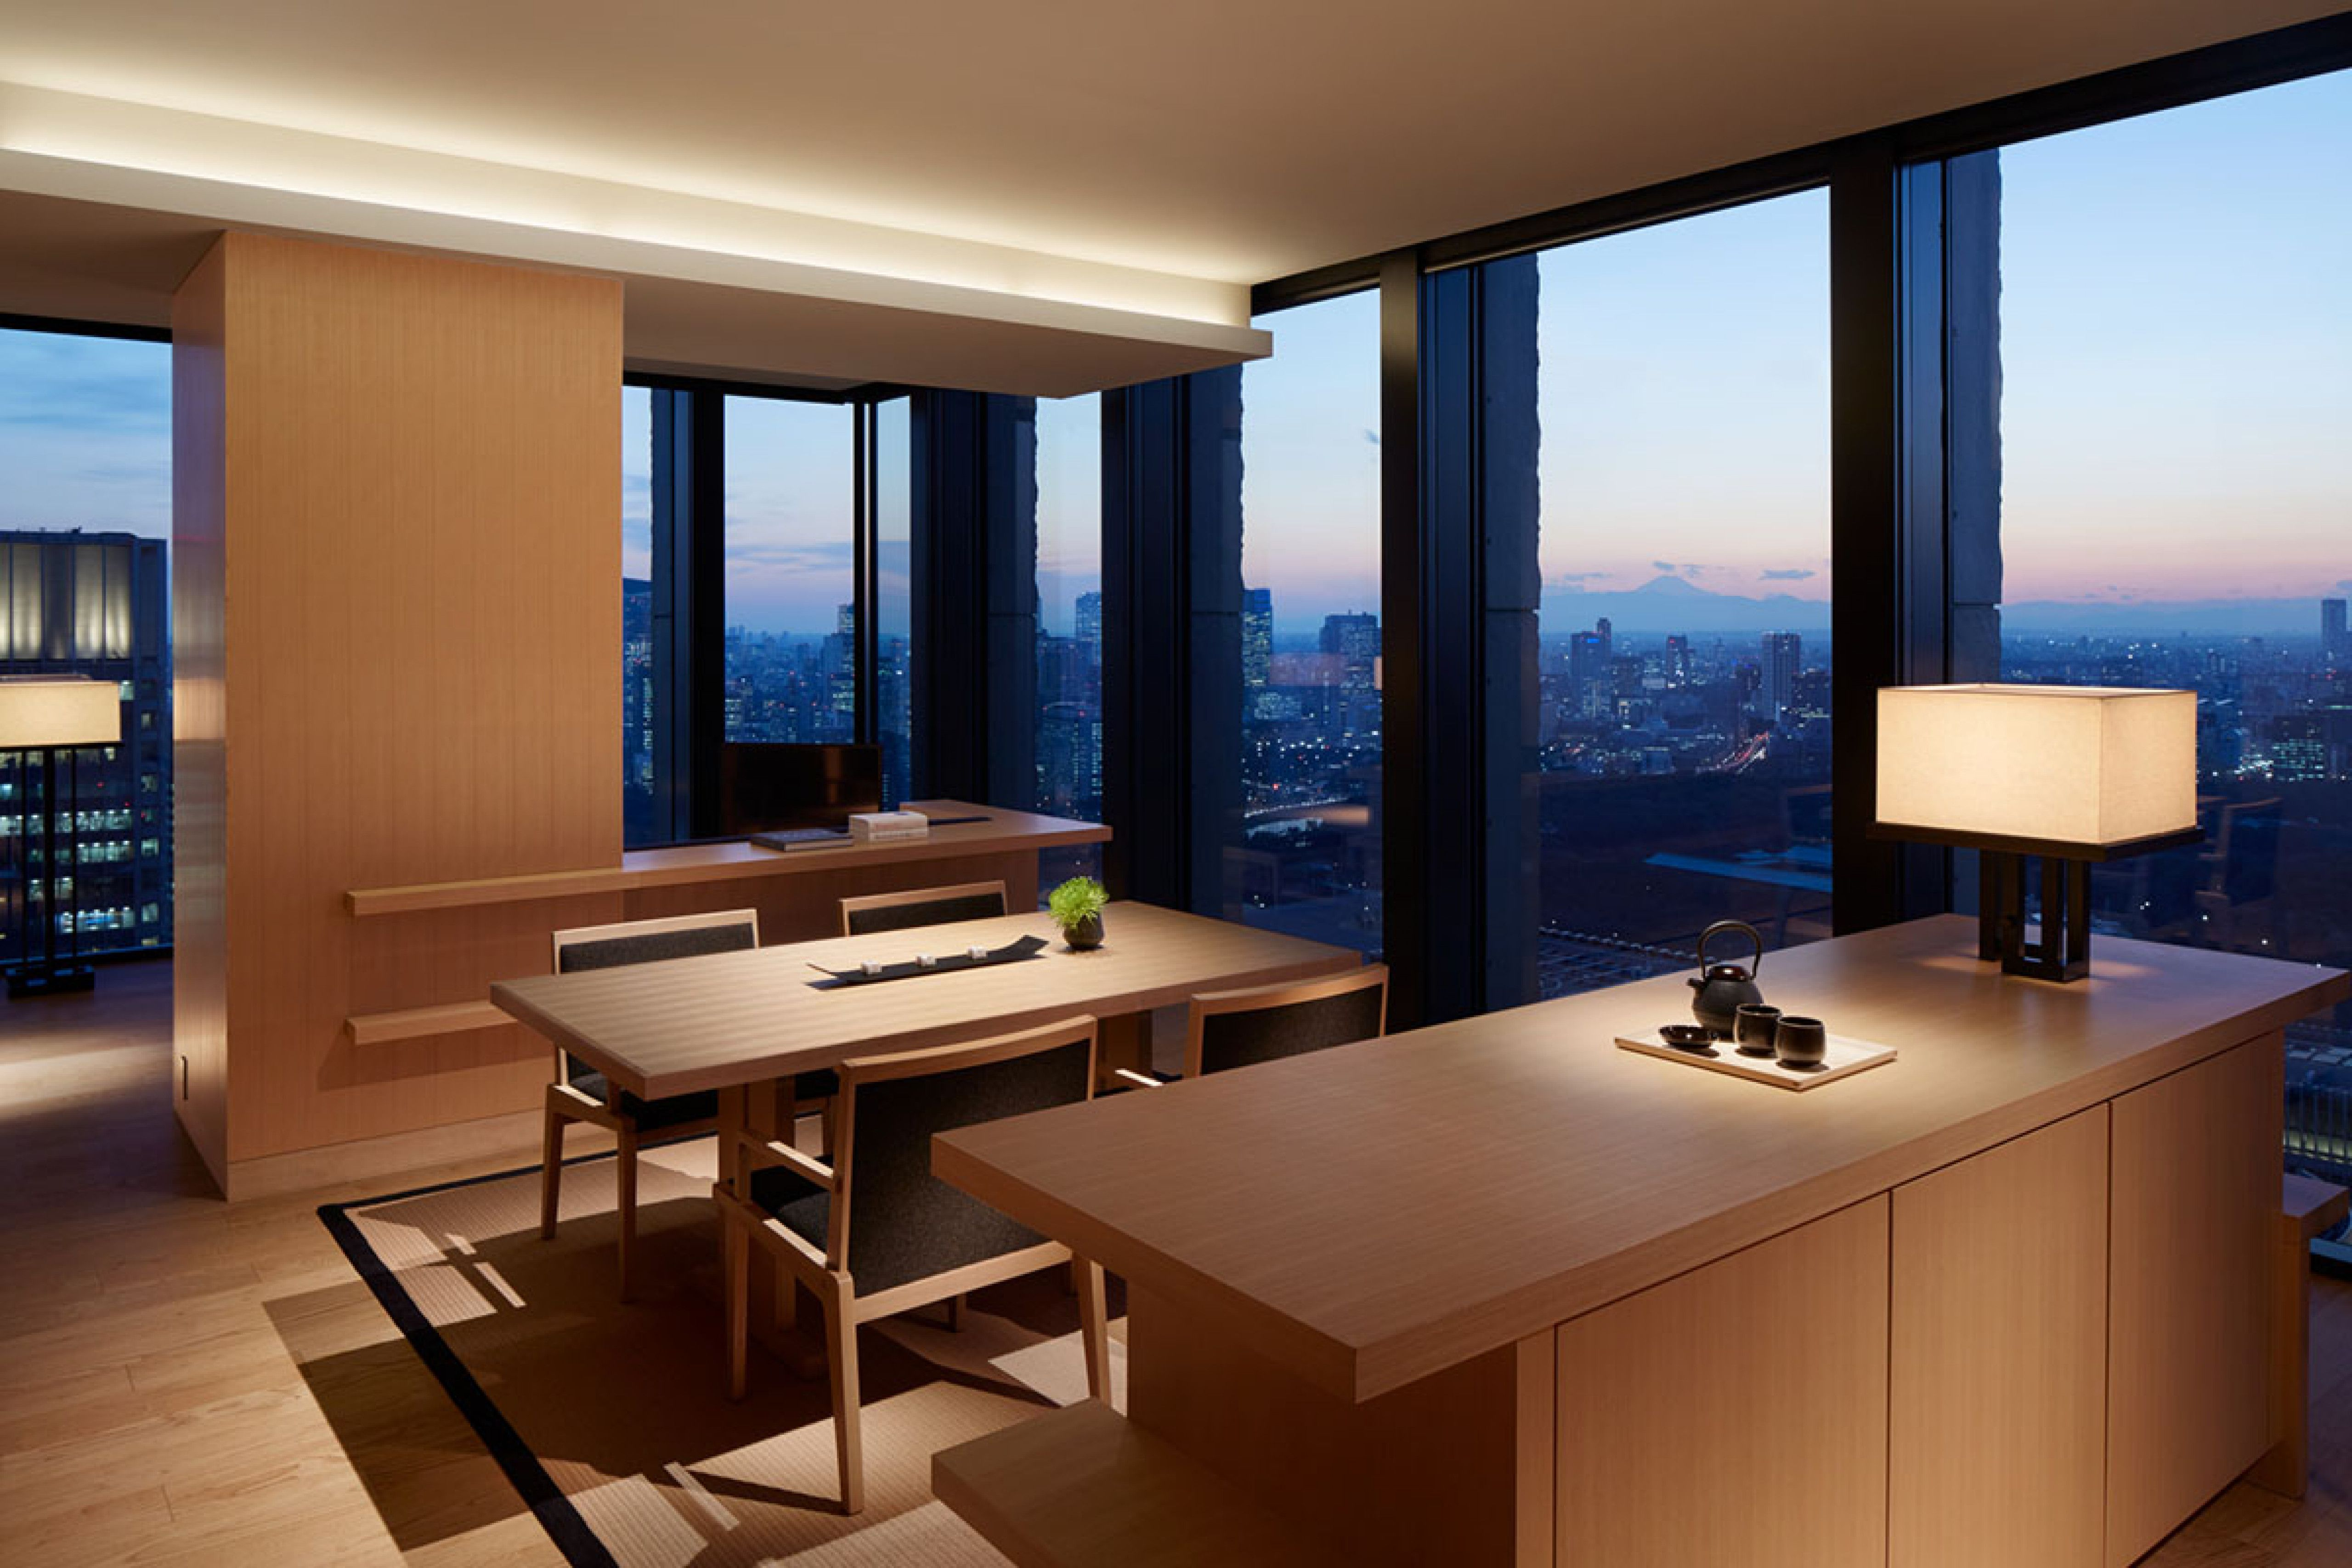 Accommodation details seoul luxury hotel accommodations rooms - Explore Luxury Hotels Tokyo And More